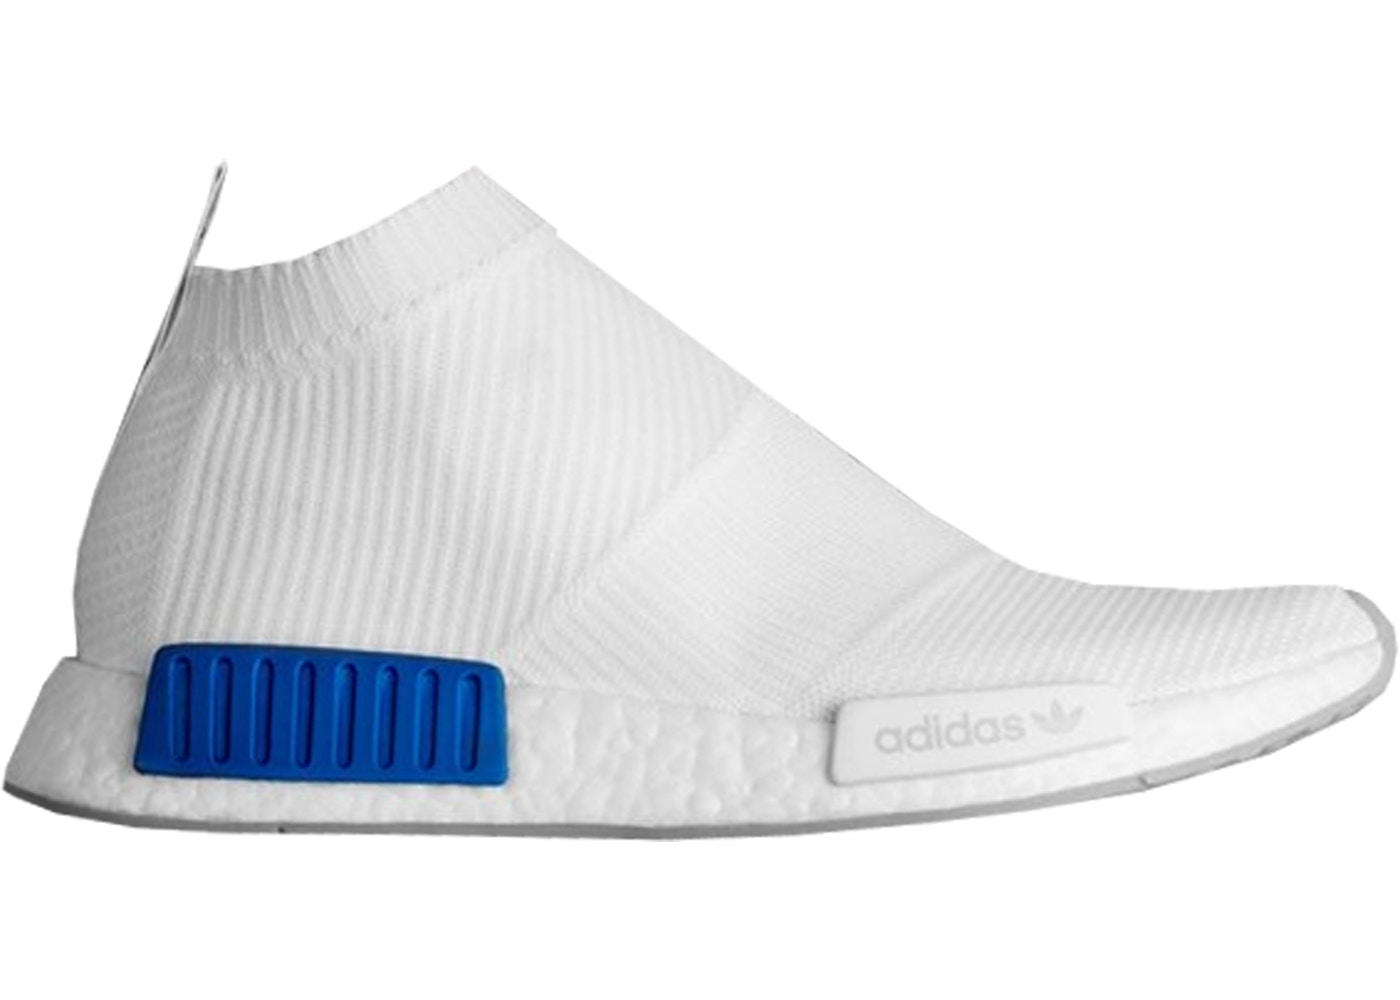 cheap for discount f3b2c 1fd24 adidas NMD CS1 Oddities (Complexcon Exclusive) - B41819